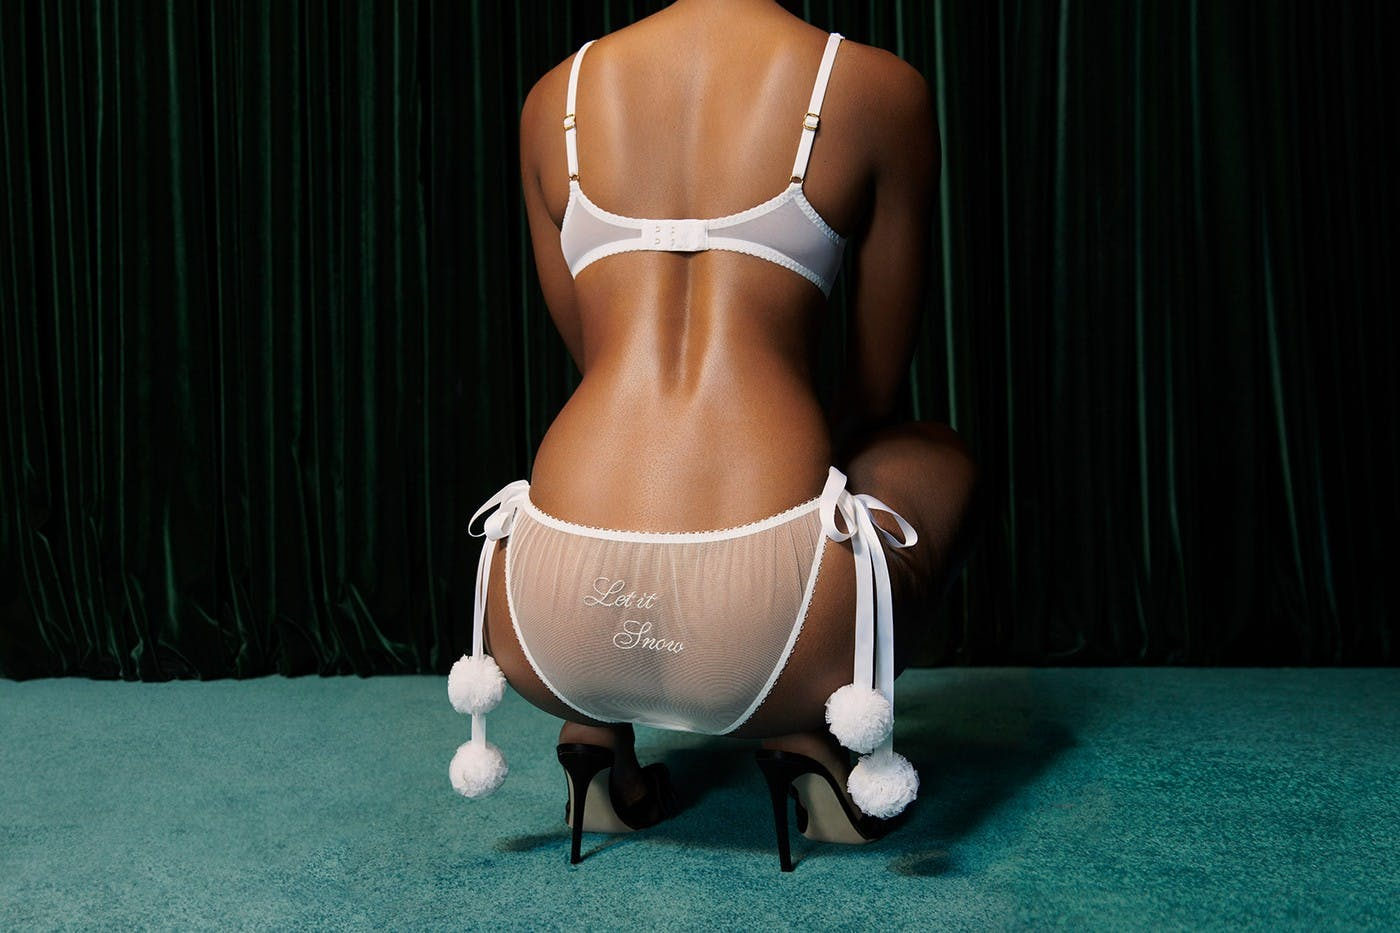 AGENT PROVOCATEUR HOLIDAY 2020 CAMPAIGN